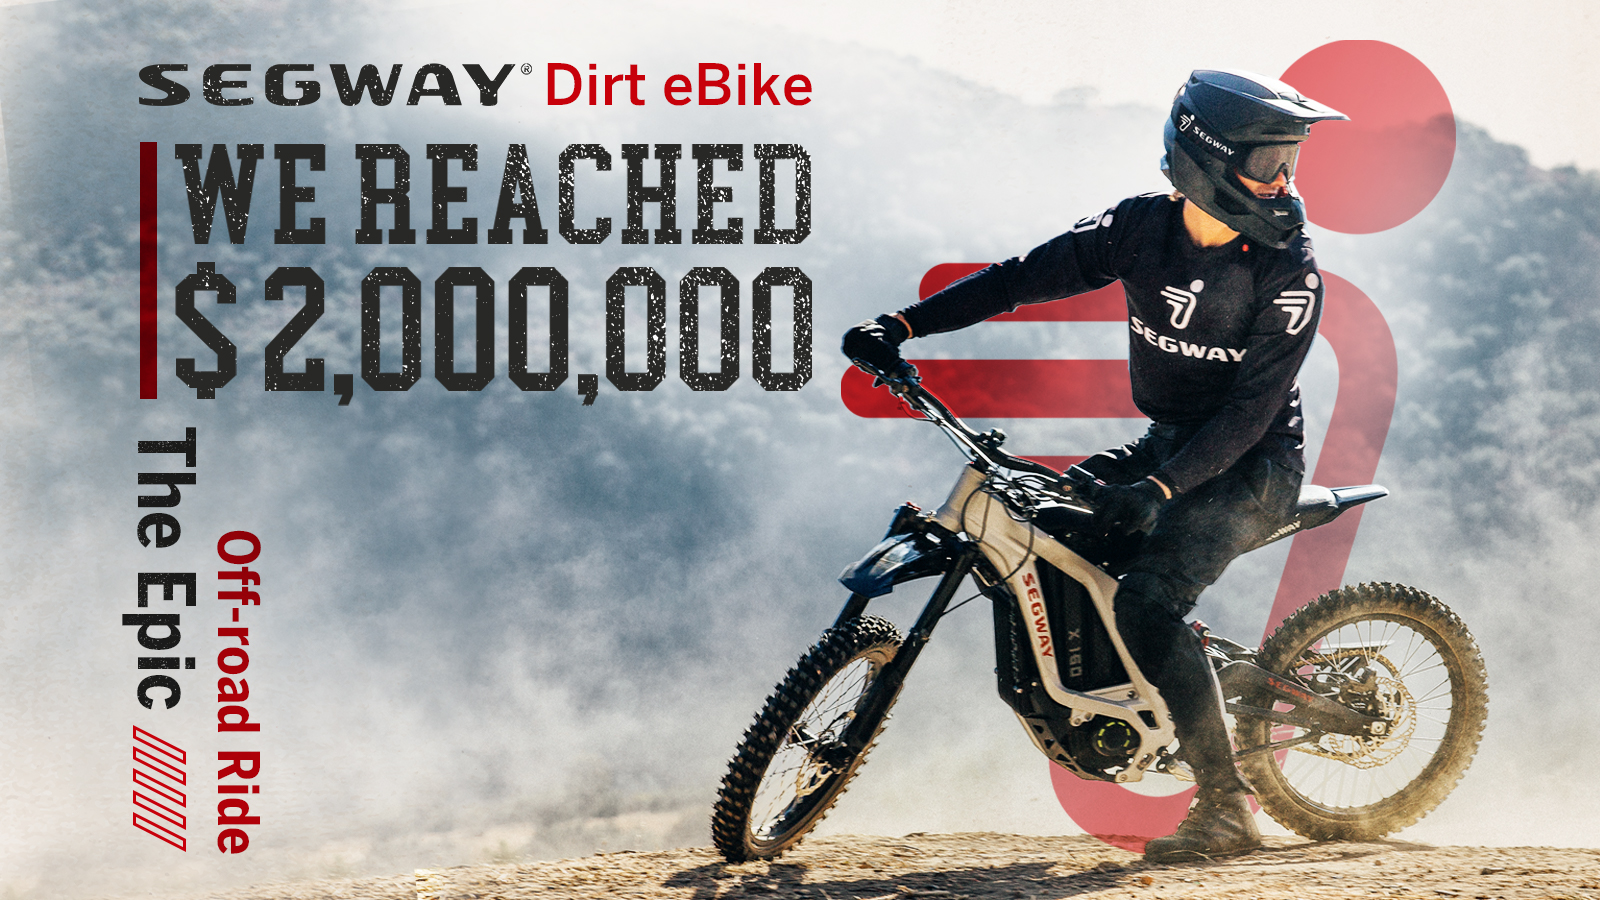 We Reached $2,000,000 Segway Dirt eBike The Epic Off-road Ride